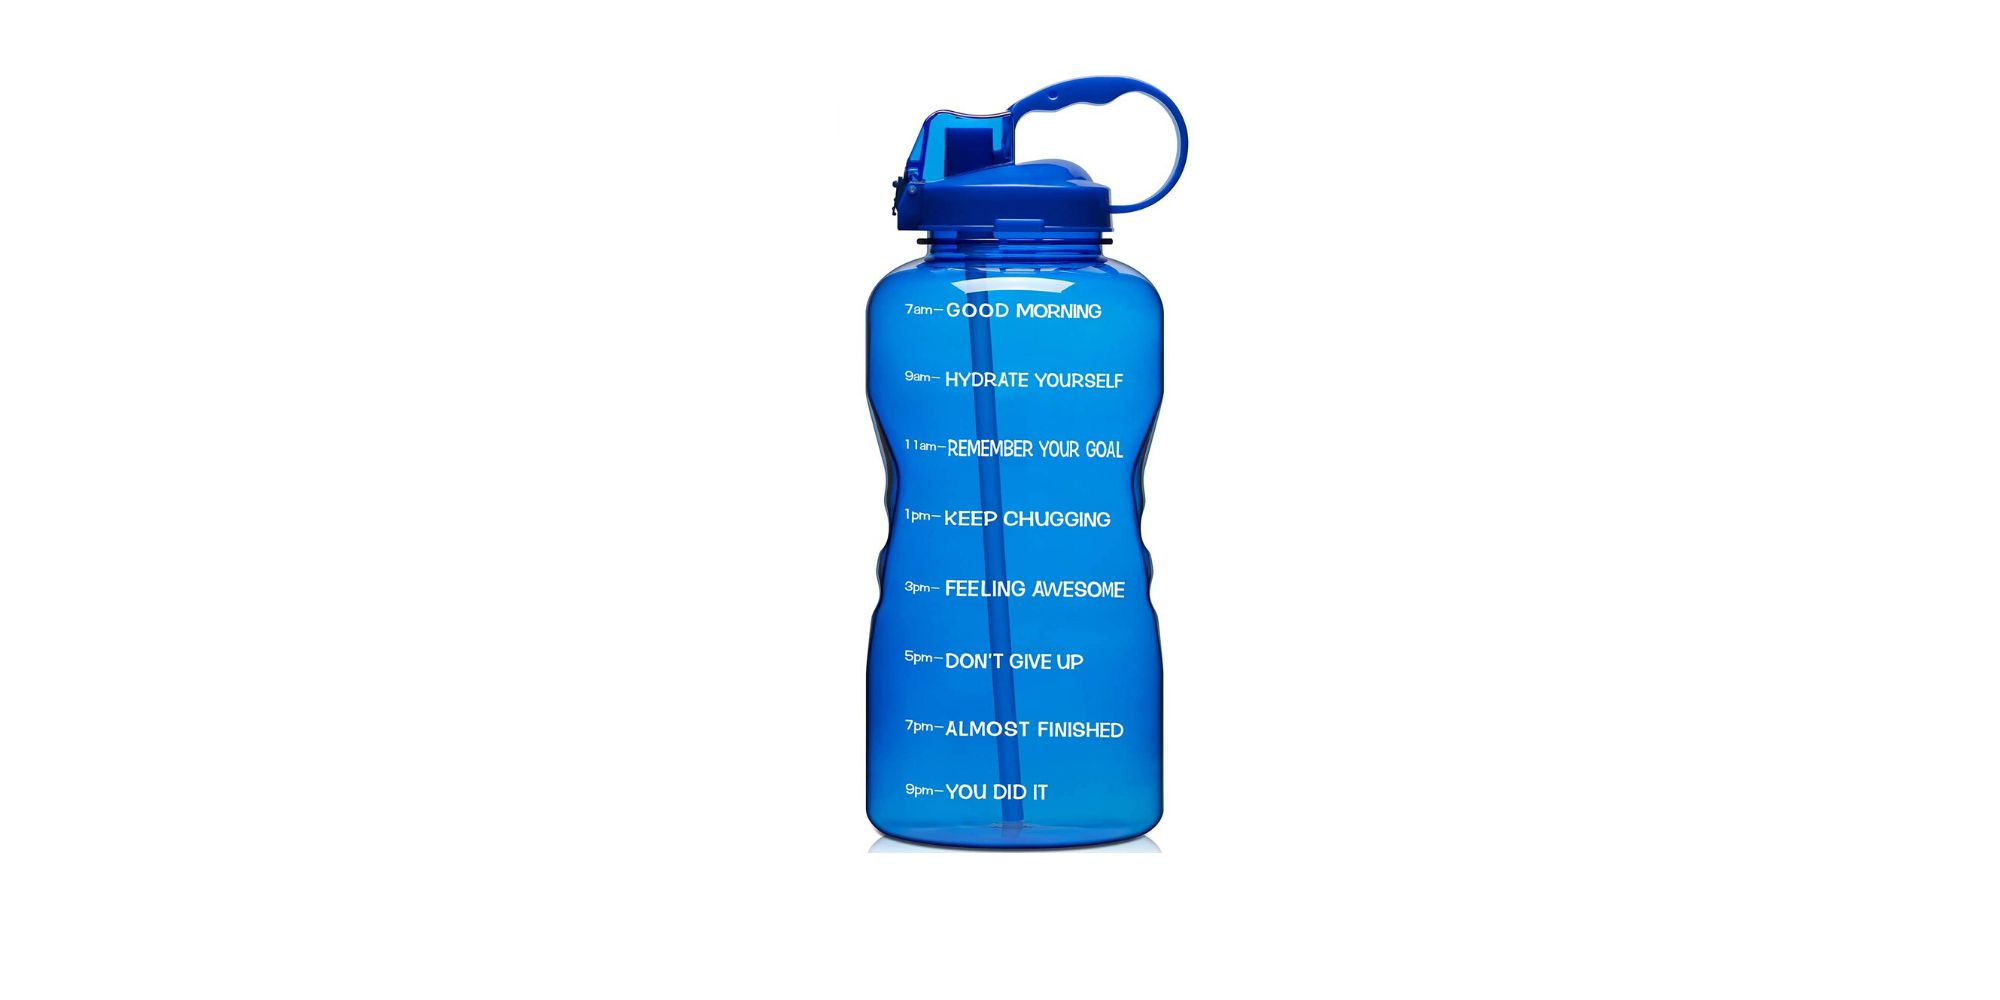 Venture Pal is 1 gallon motivational and BPA-free leakproof water bottle